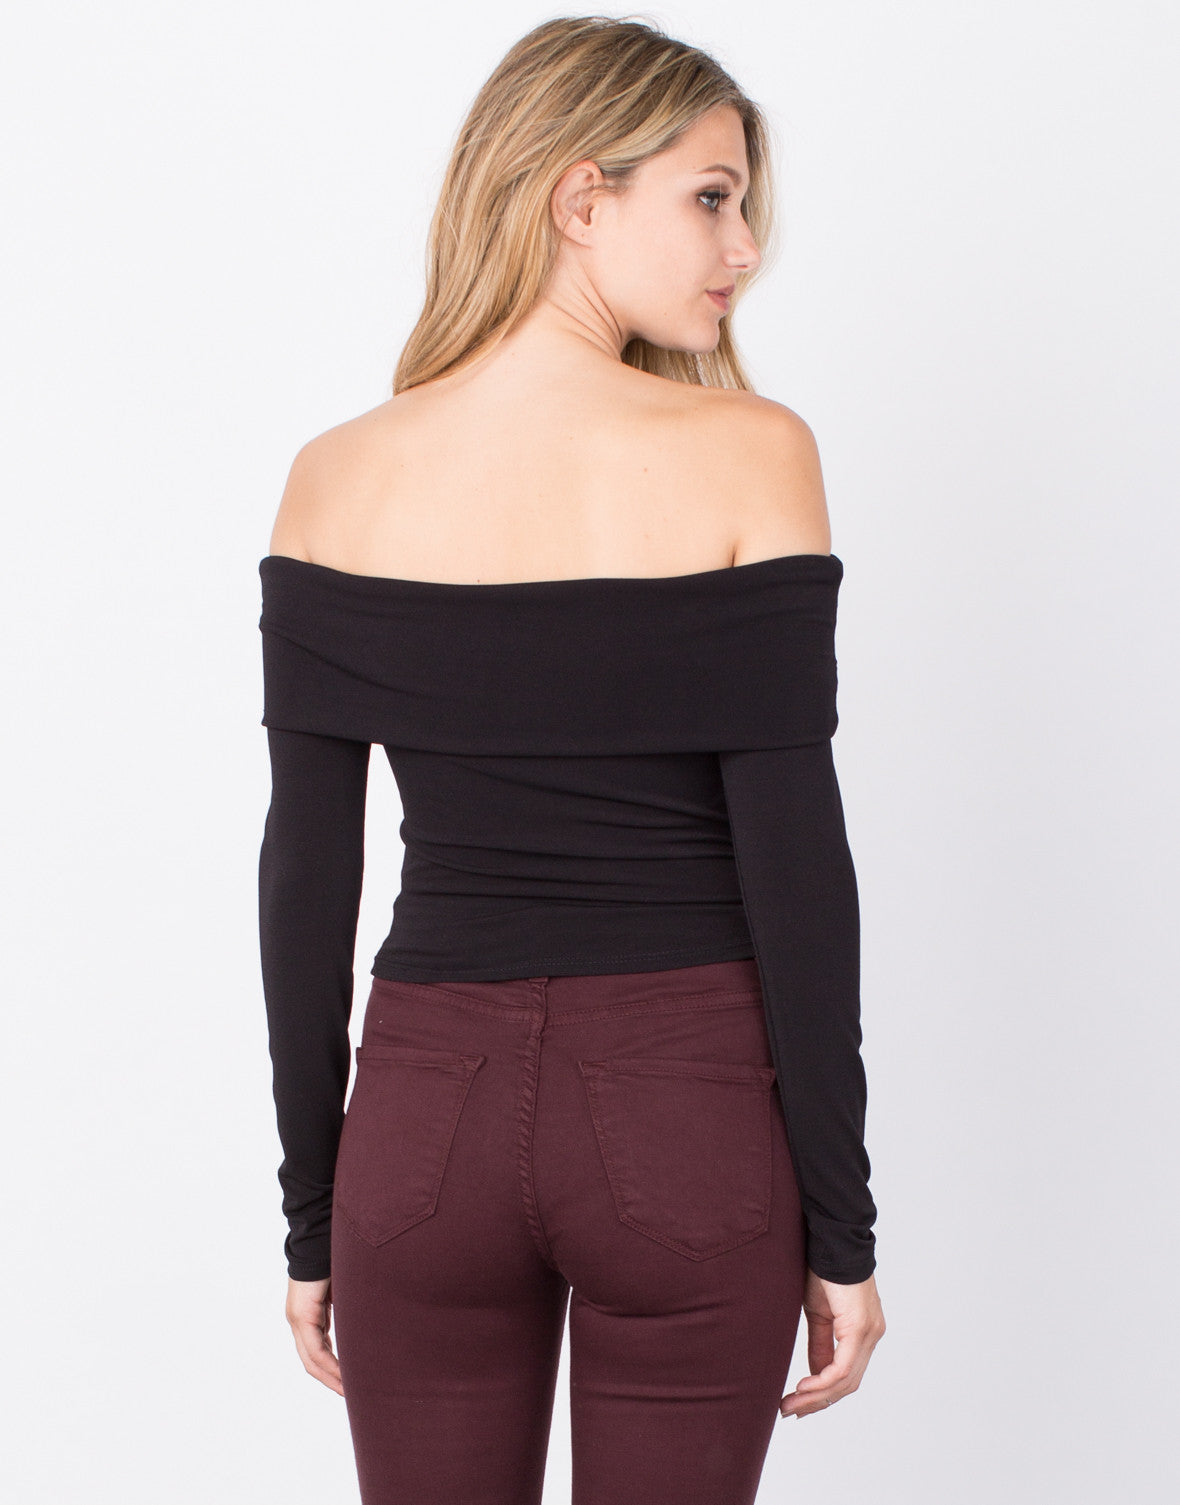 Back View of Draped Off-the-Shoulder Crop Top